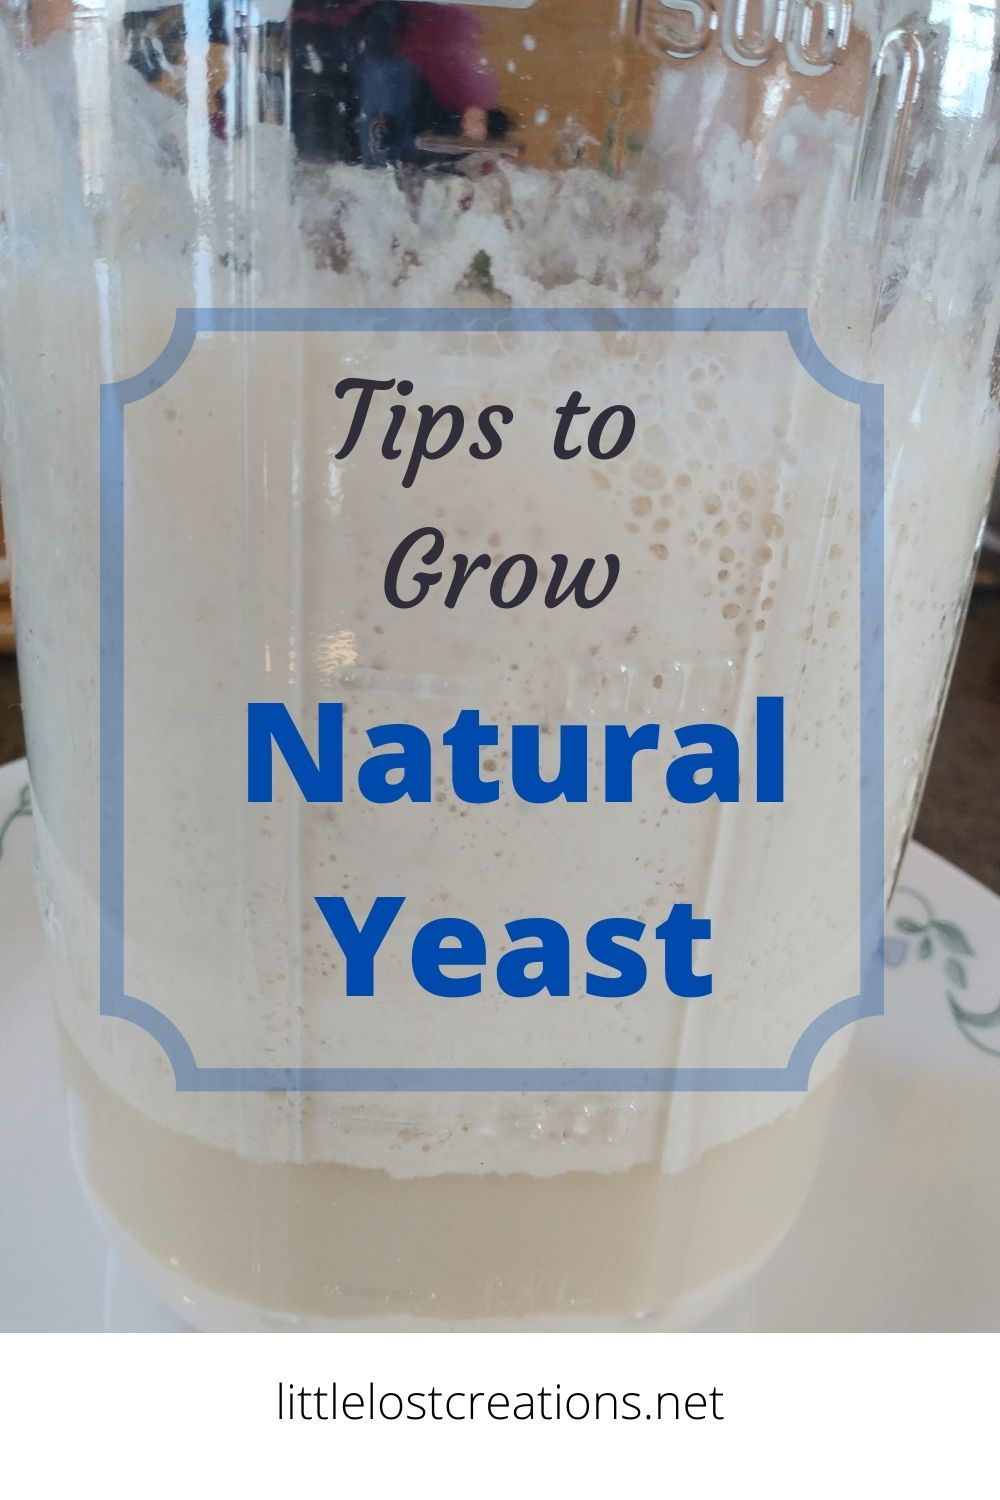 Tips to grow natural yeast.  A canning jar with yeast bubbling in the jar.